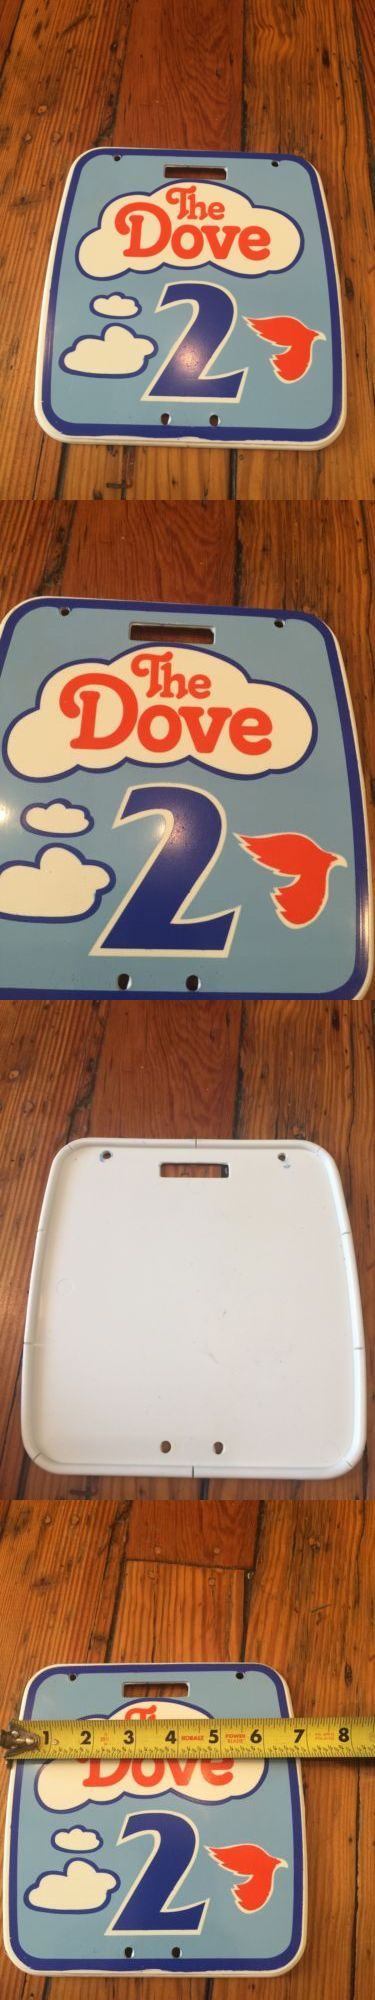 Decals Stickers 106953: Vintage Nos Old School 80 S Girls The Dove Bicycle Number Plate - -> BUY IT NOW ONLY: $31.45 on eBay!